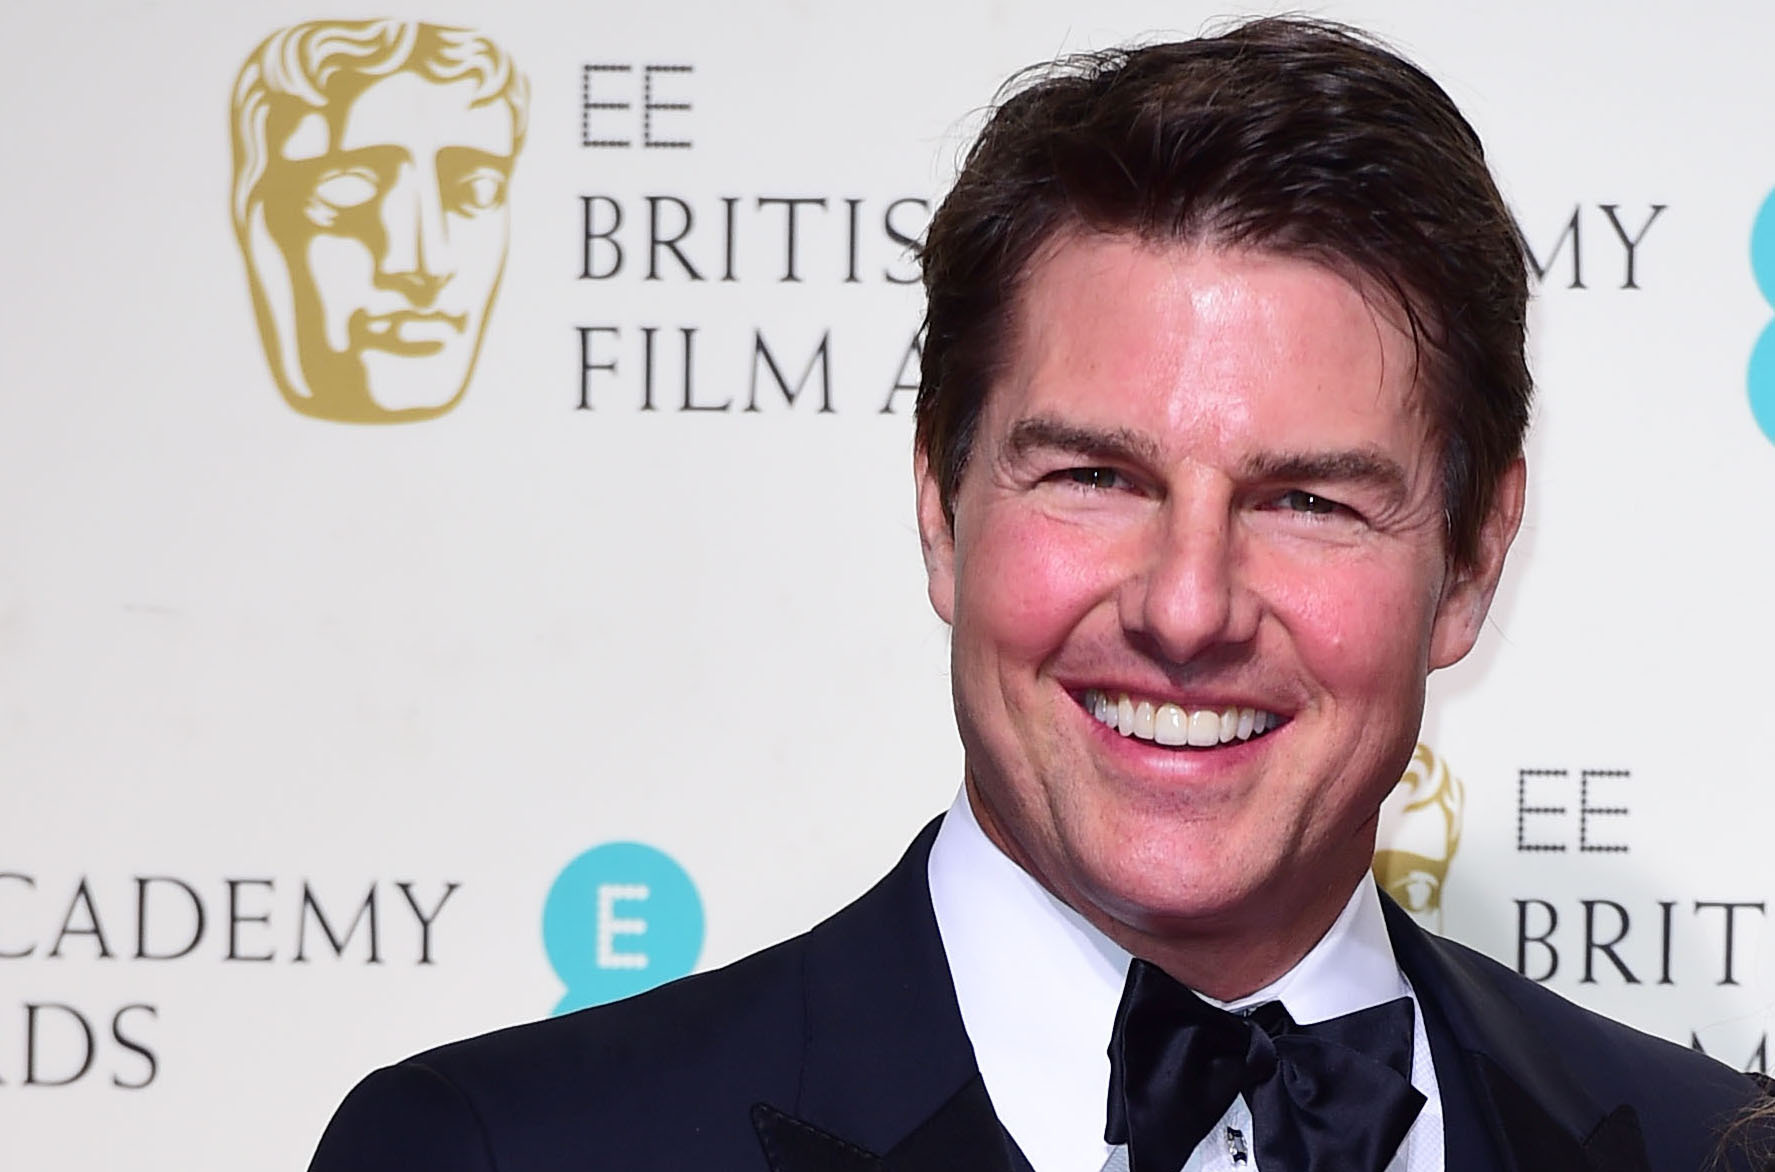 Tom Cruise injured as Mission: Impossible filming shut down